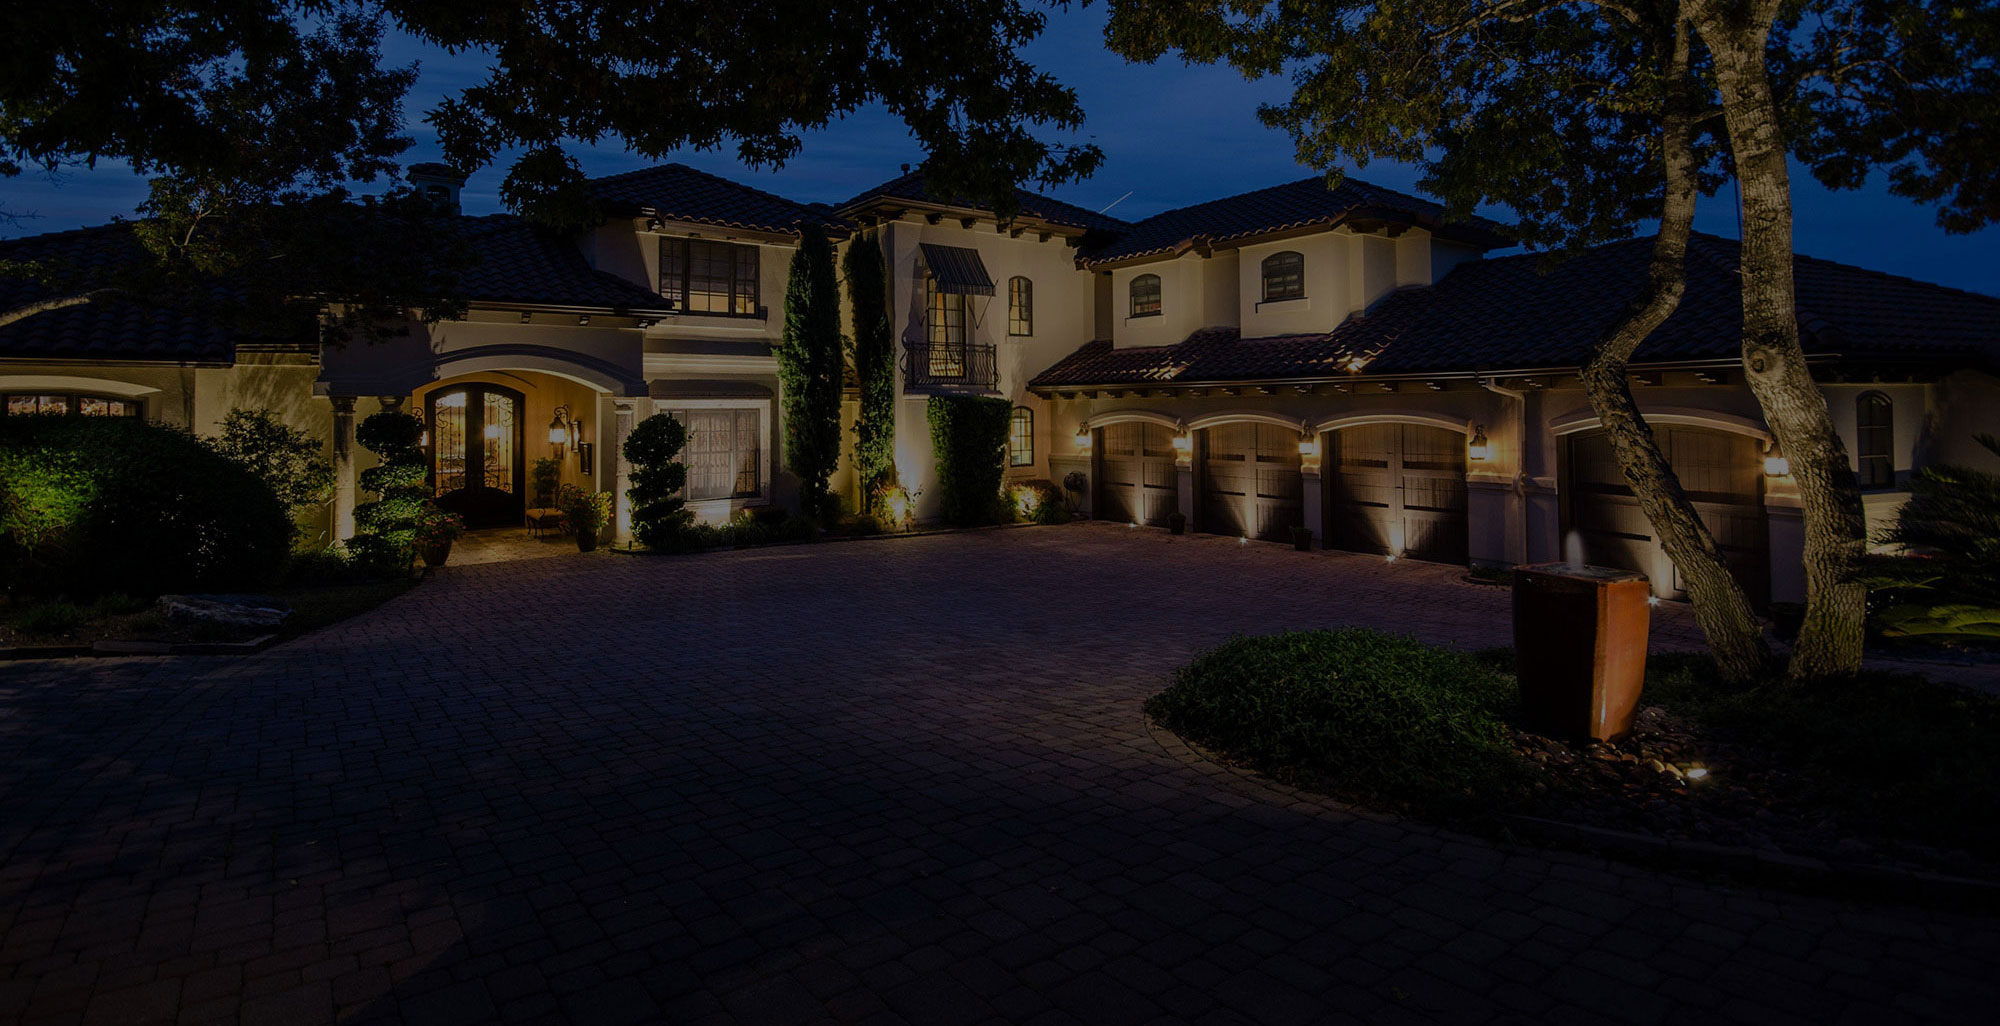 Outdoor Lighting Pictures Residential outdoor lighting services texas outdoor lighting residential outdoor lighting services workwithnaturefo